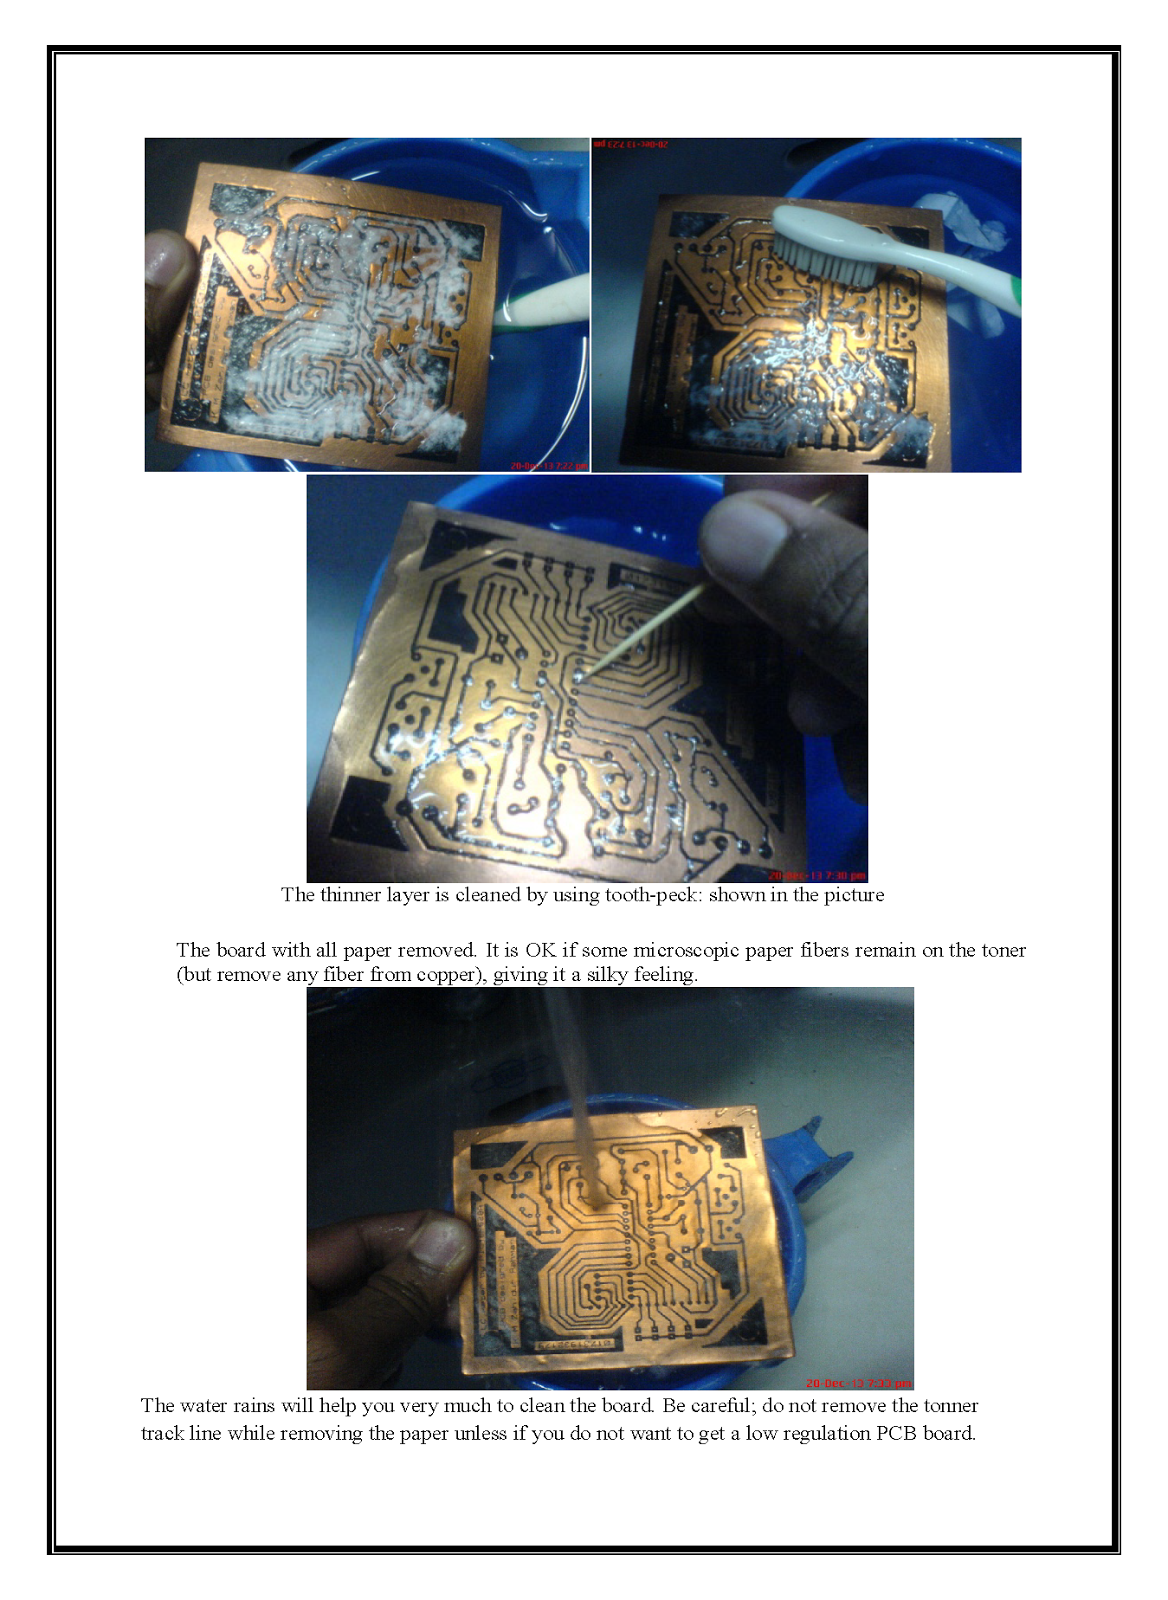 Making Pcb At Home Printed Circuit Board Print Your Mobile Phone Okey China Layout On A Copper And Want To Make Custom Then My This Attached Hand Note Will Help You Dream Come True